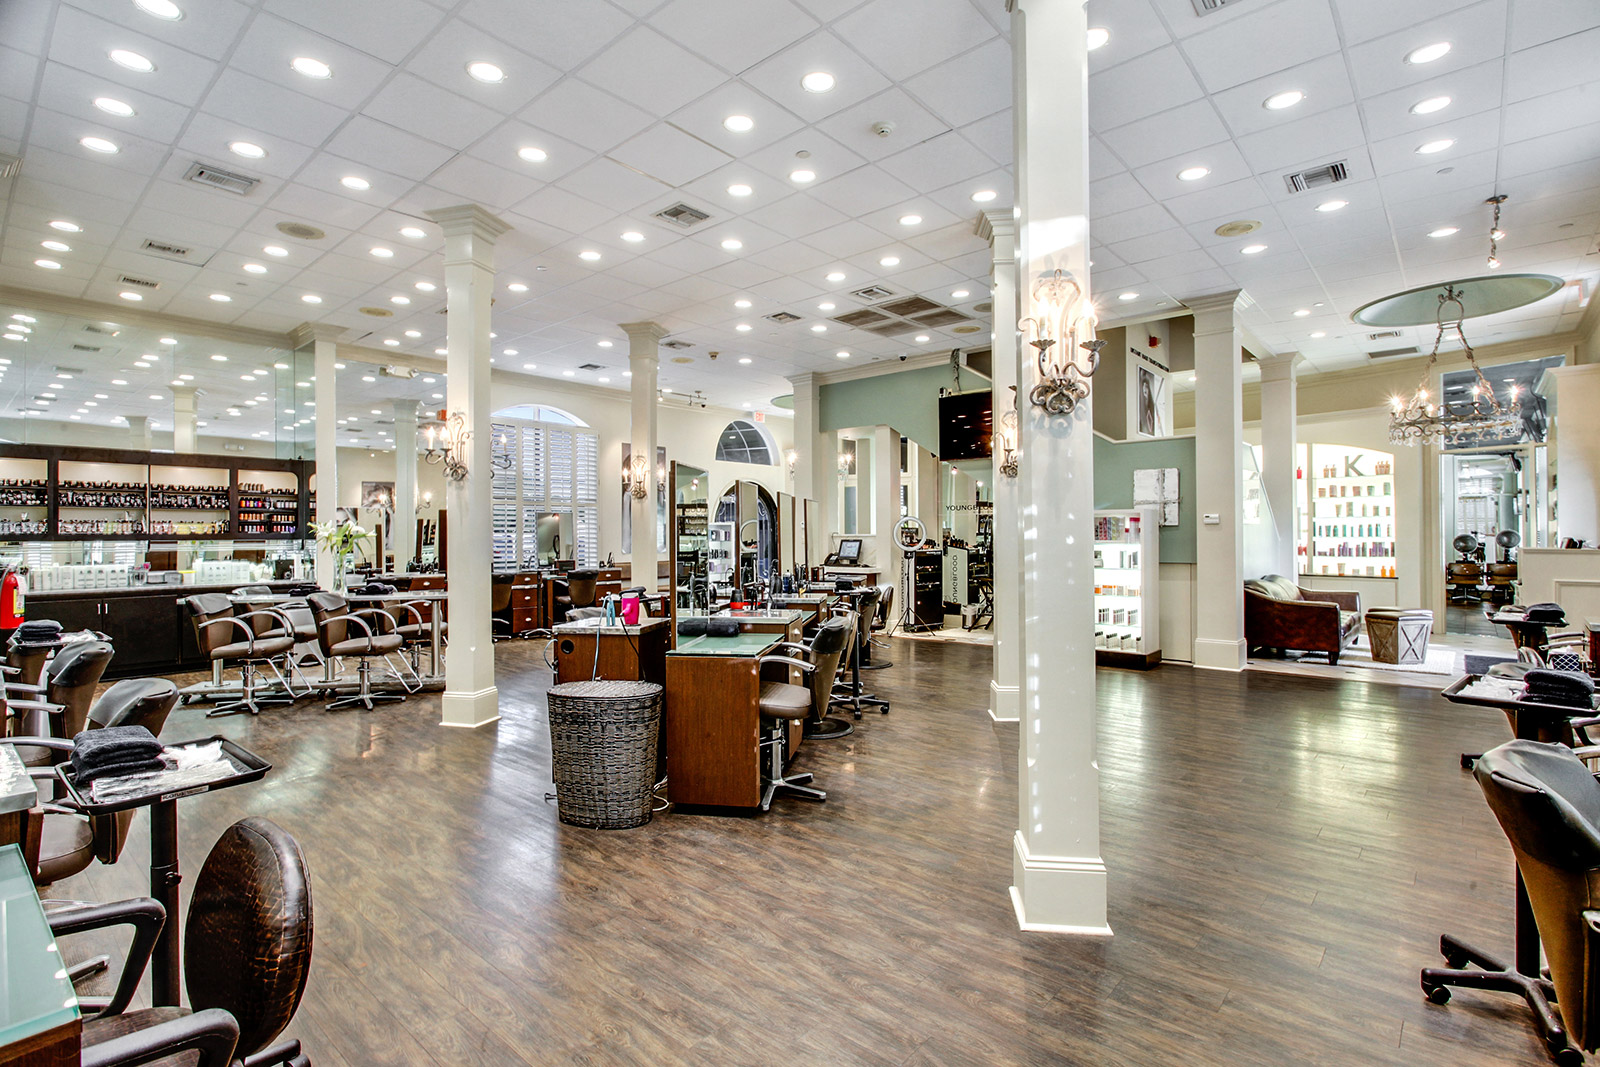 Salon (no people)